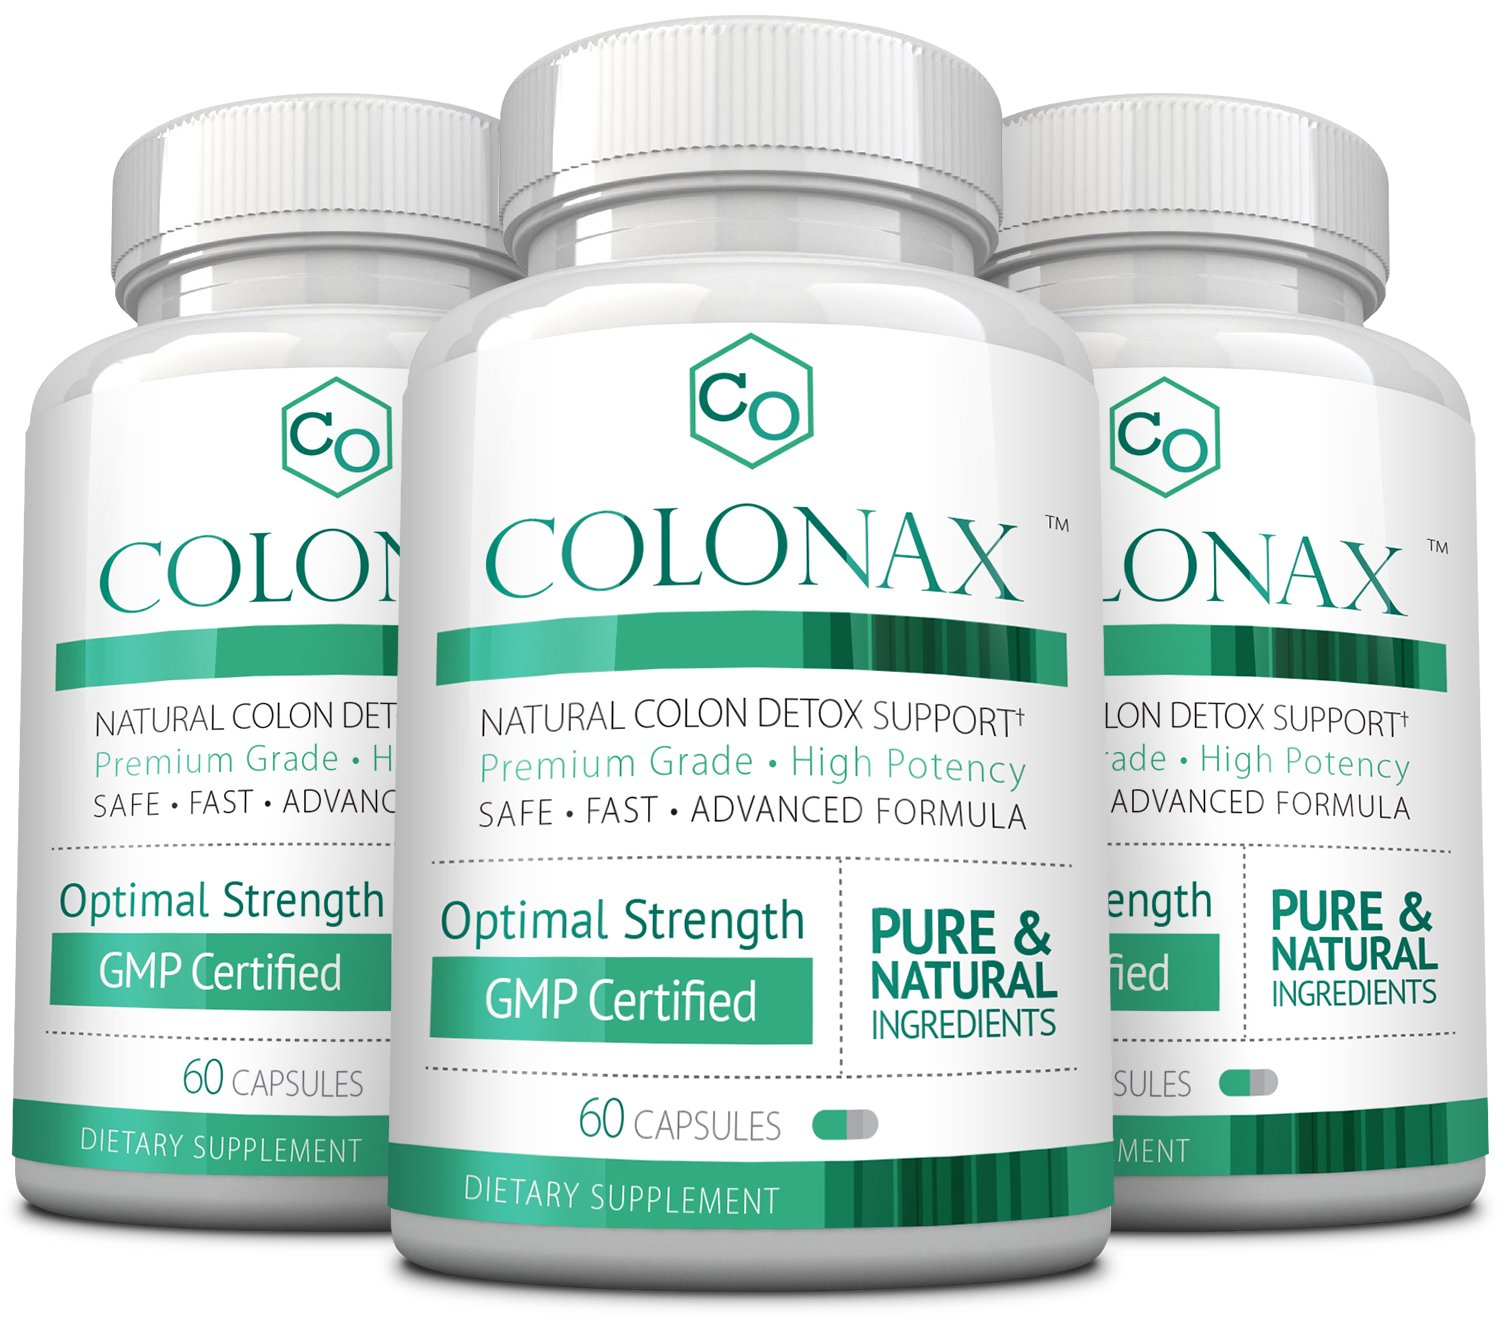 Colonax - Natural Colon Cleanse and Detox Support- Supports Colon Health and Weight Loss; 3 Months Supply